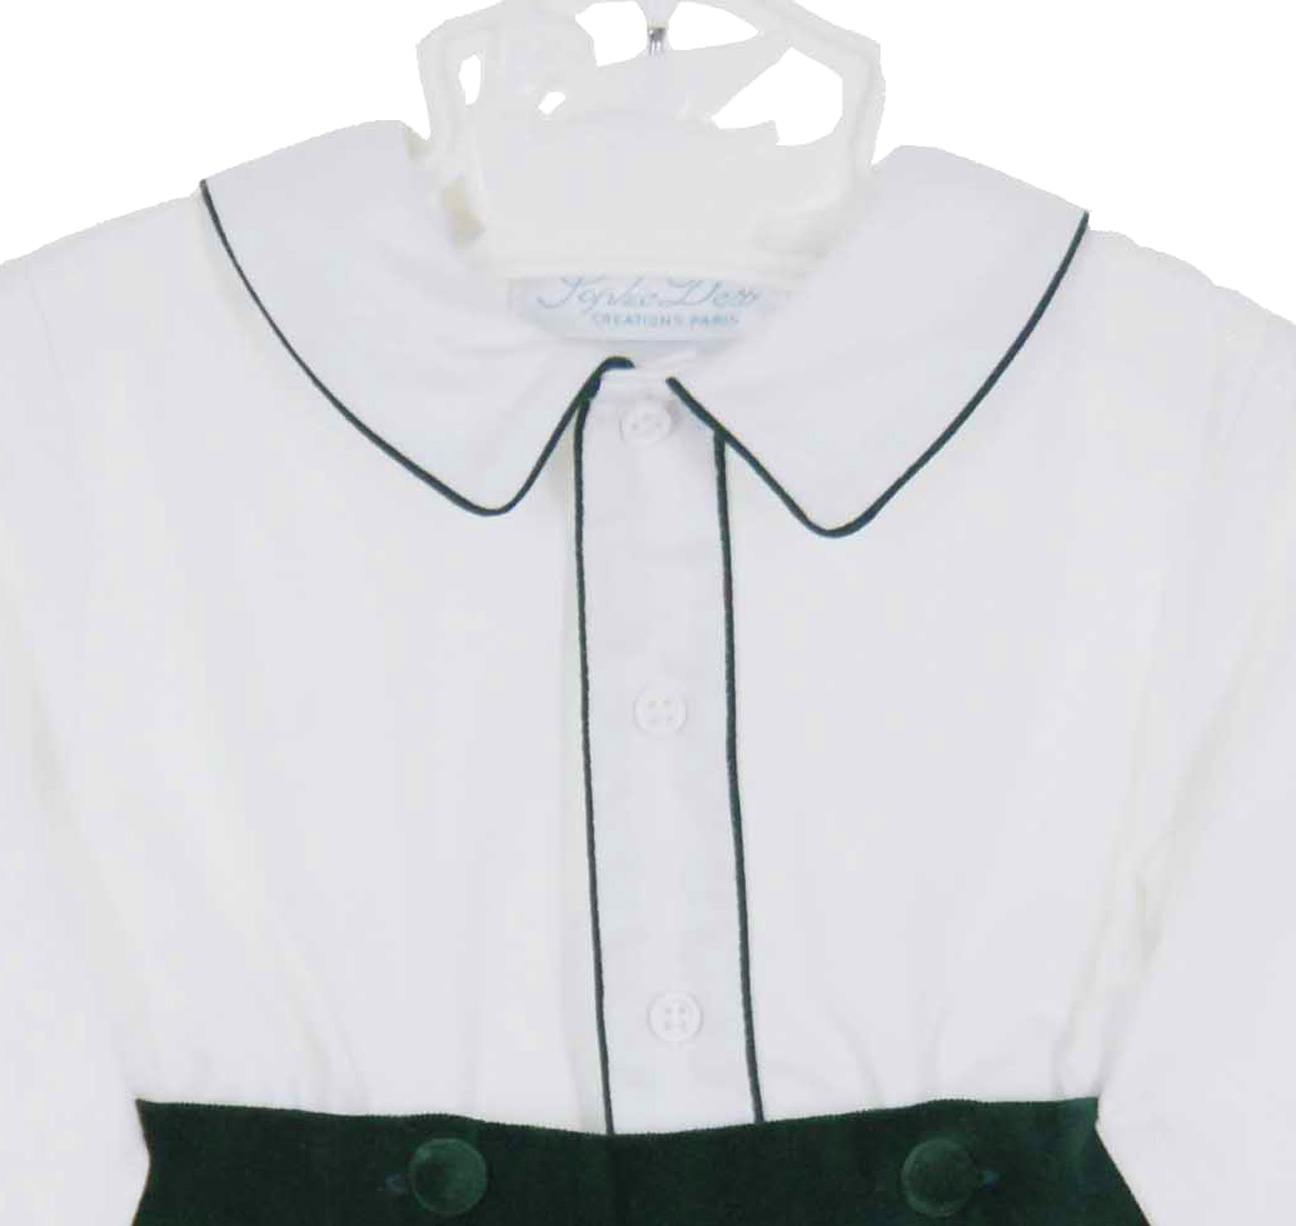 bfc2e1c90 NEW Sophie Dess Green Velvet Shorts Set with White Shirt